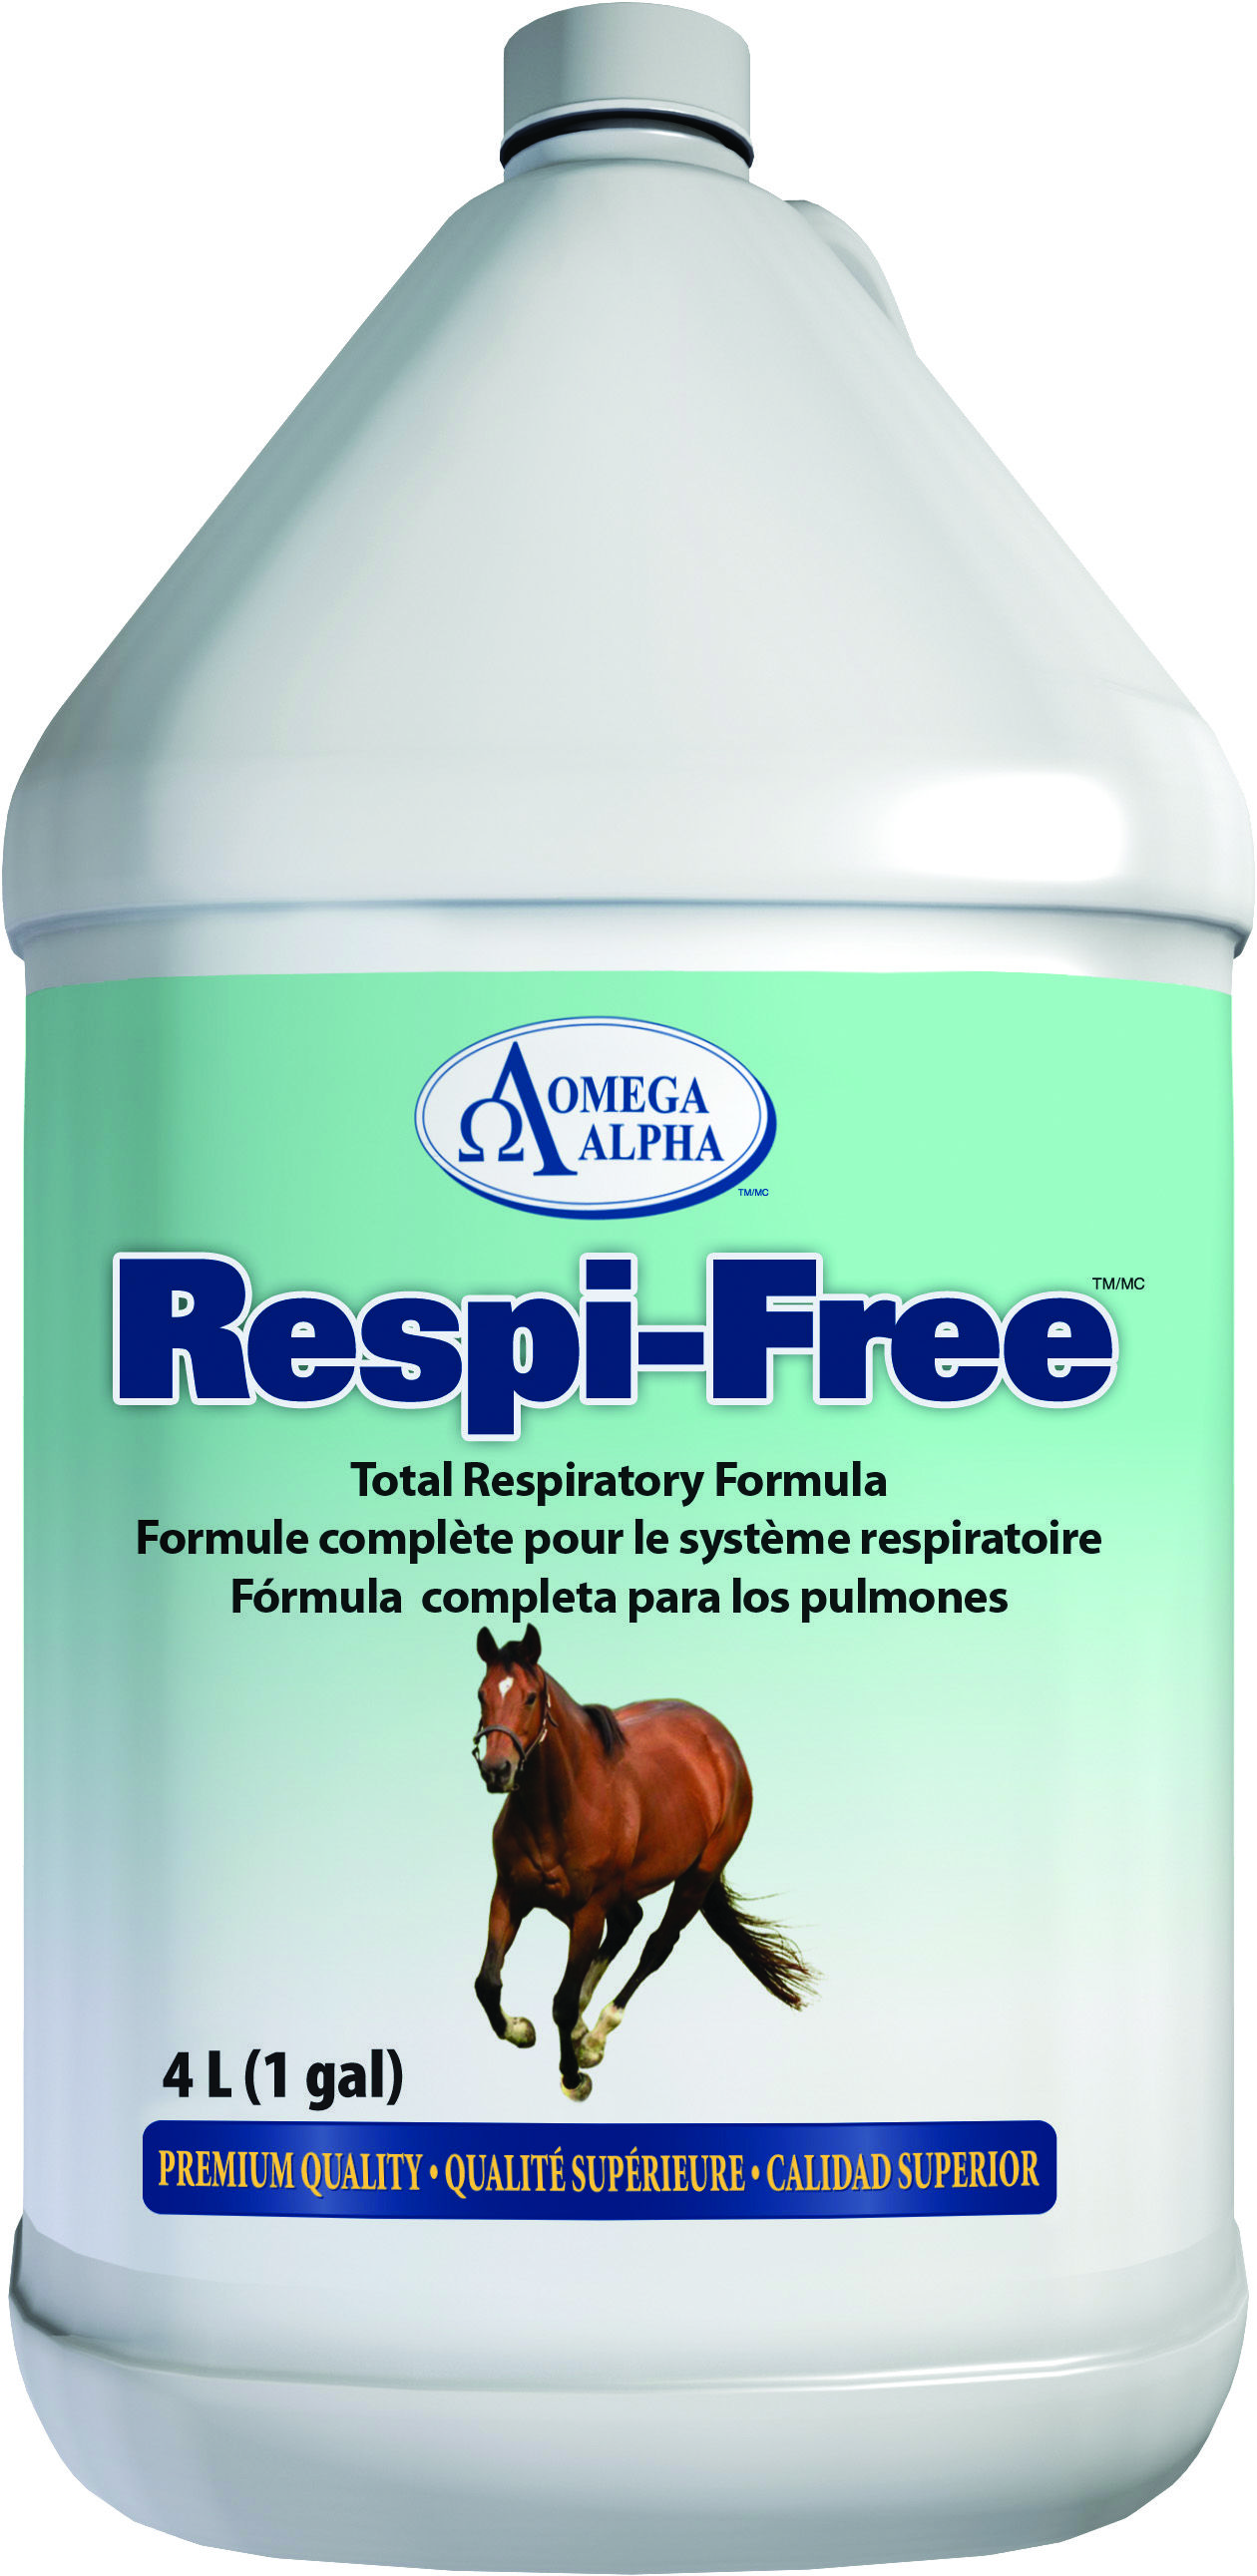 Respi Free Is A Combination Of Three Omega Alpha Products Lung Flush Expectorant Airwaves Bronchial Dilat Equine Nutrition Horse Health How To Stay Healthy